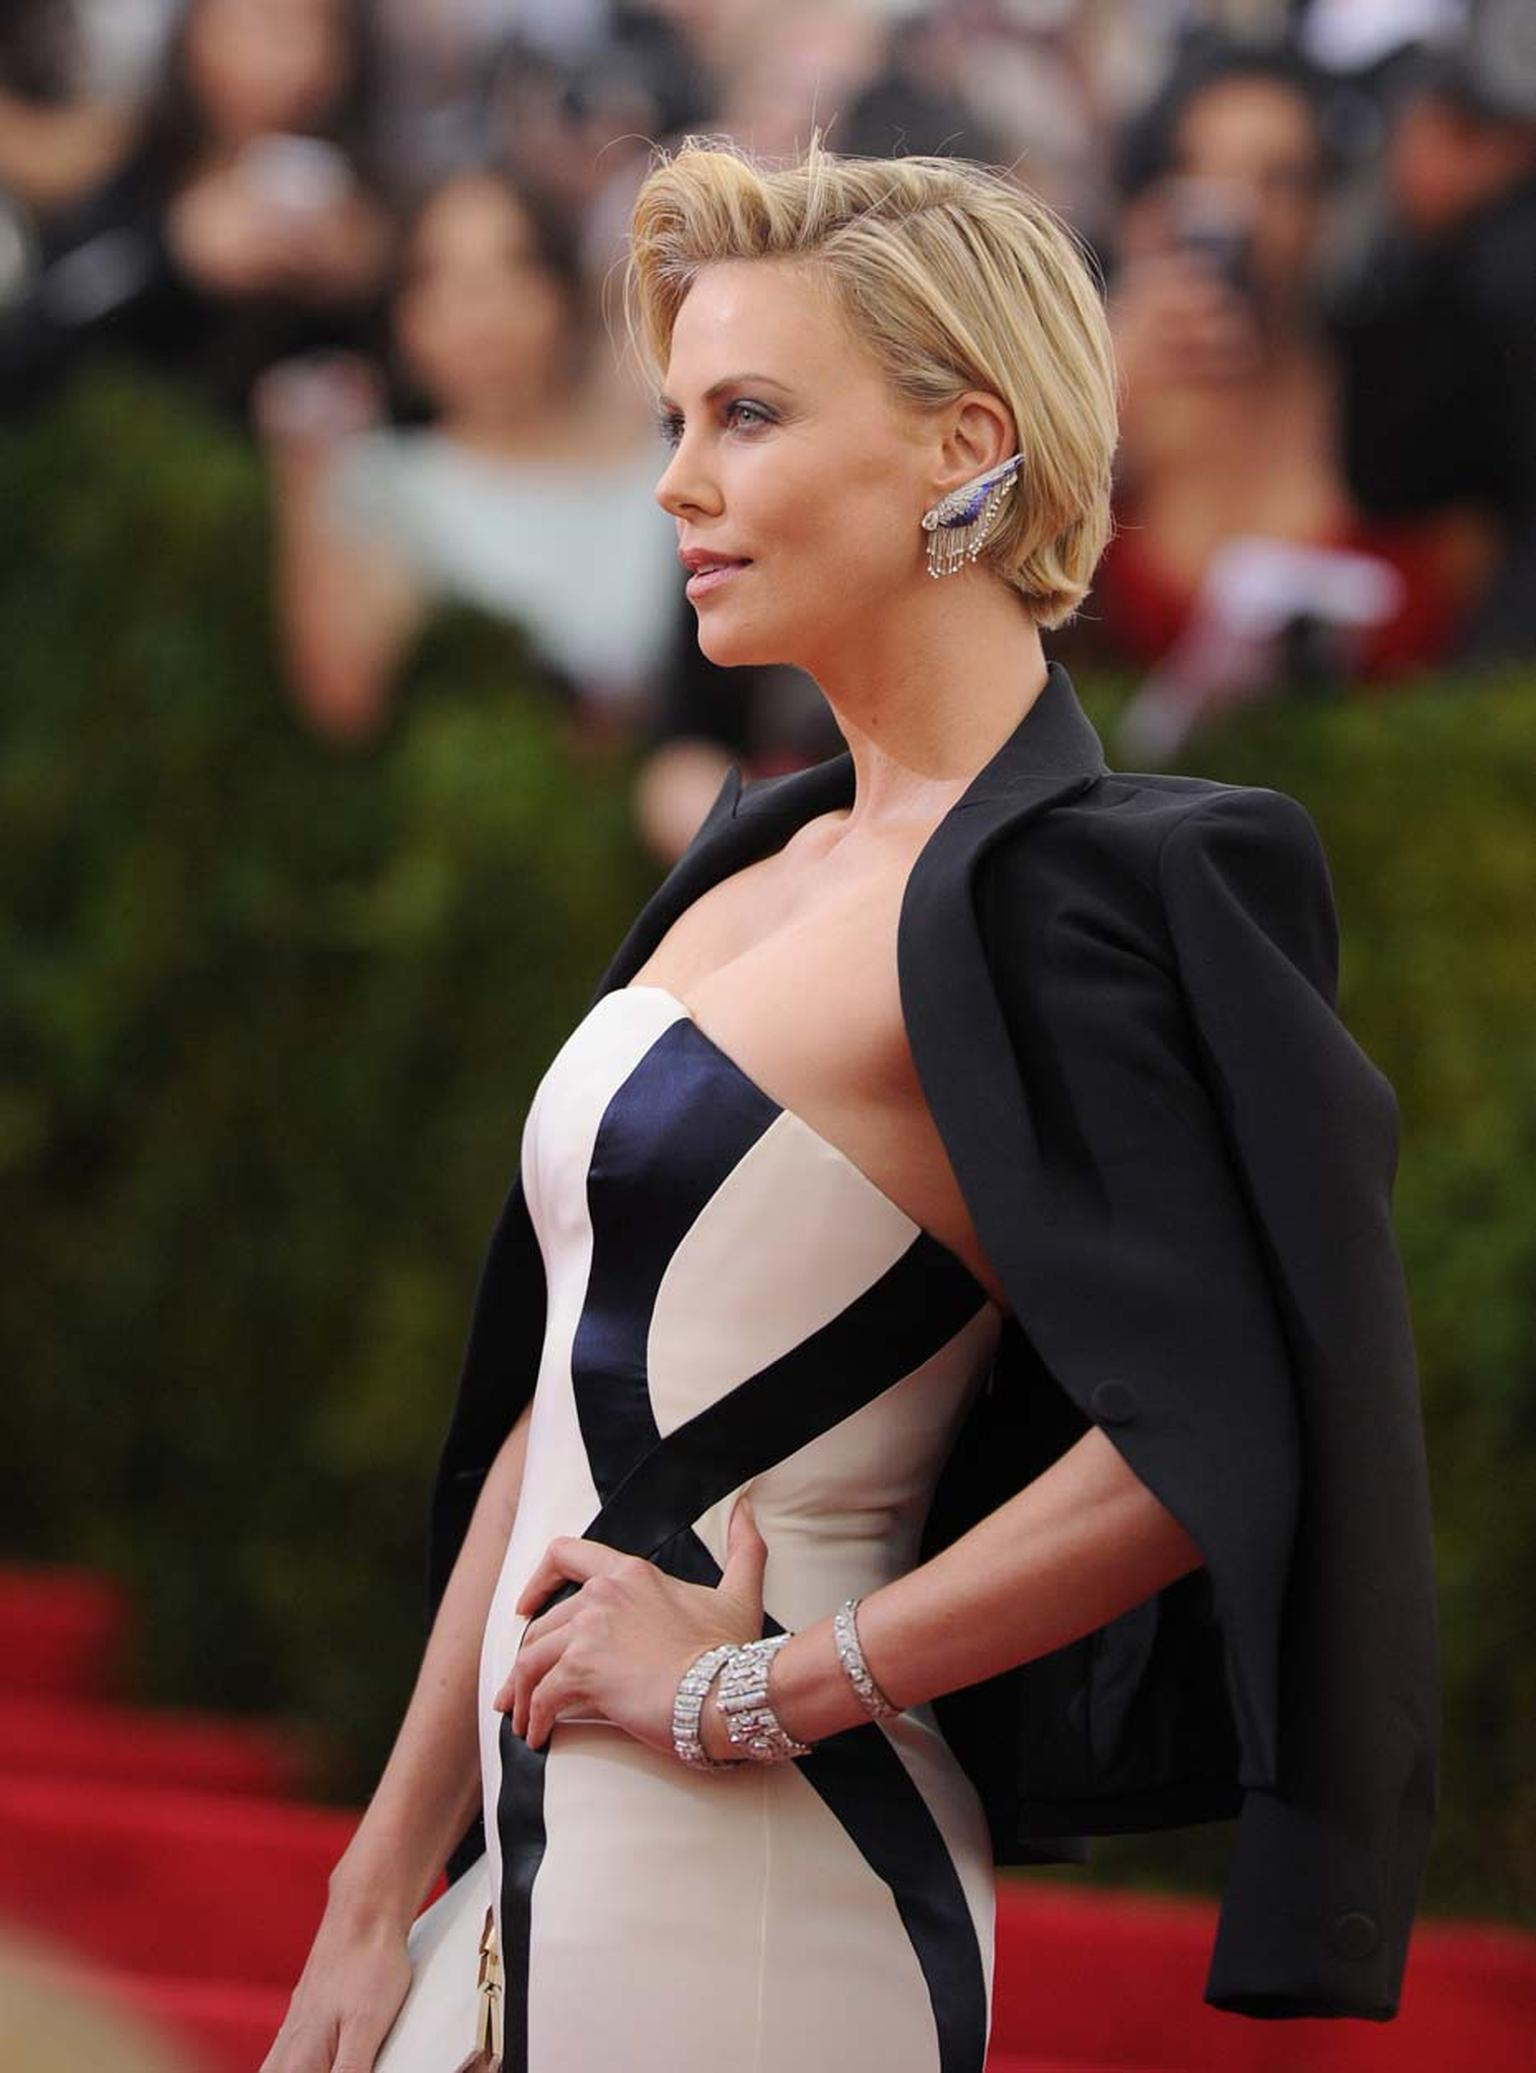 Actress Charlize Theron walks the 2014 Met Gala red carpet wearing vintage-inspired Fred Leighton diamond wing earrings with ombre enamelled feathers.